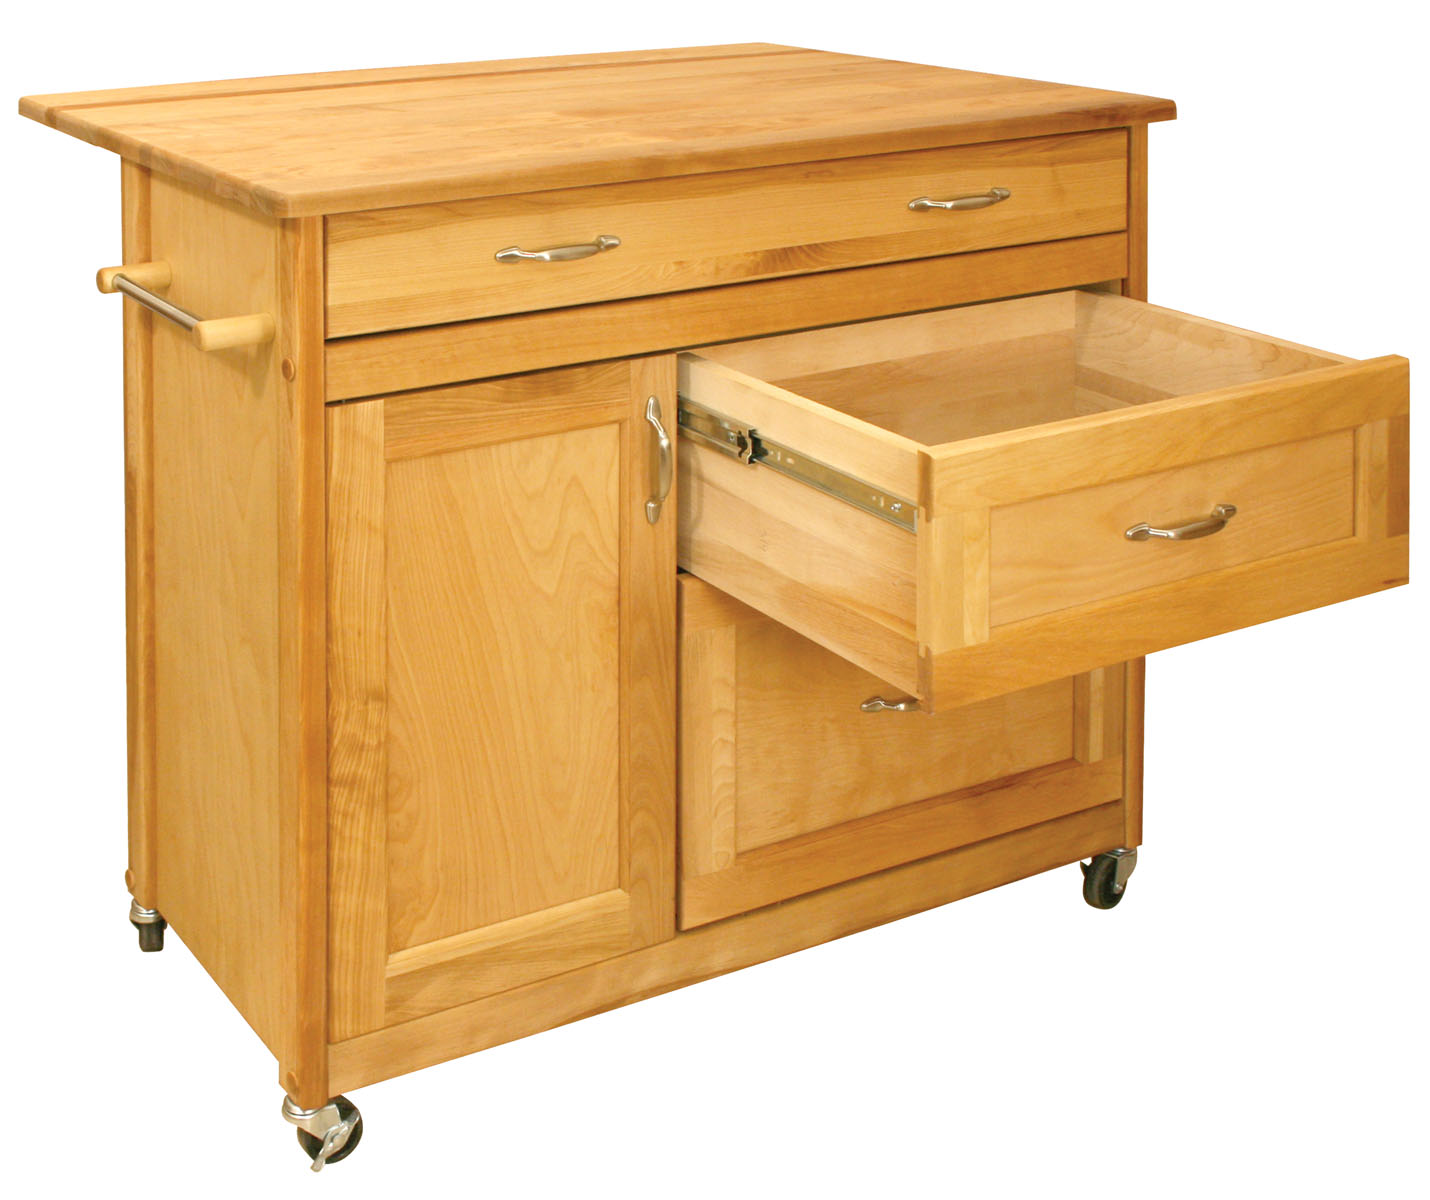 Catskill Mid-Sized Drawer Island - Huge Drawers plus Drop Leaf